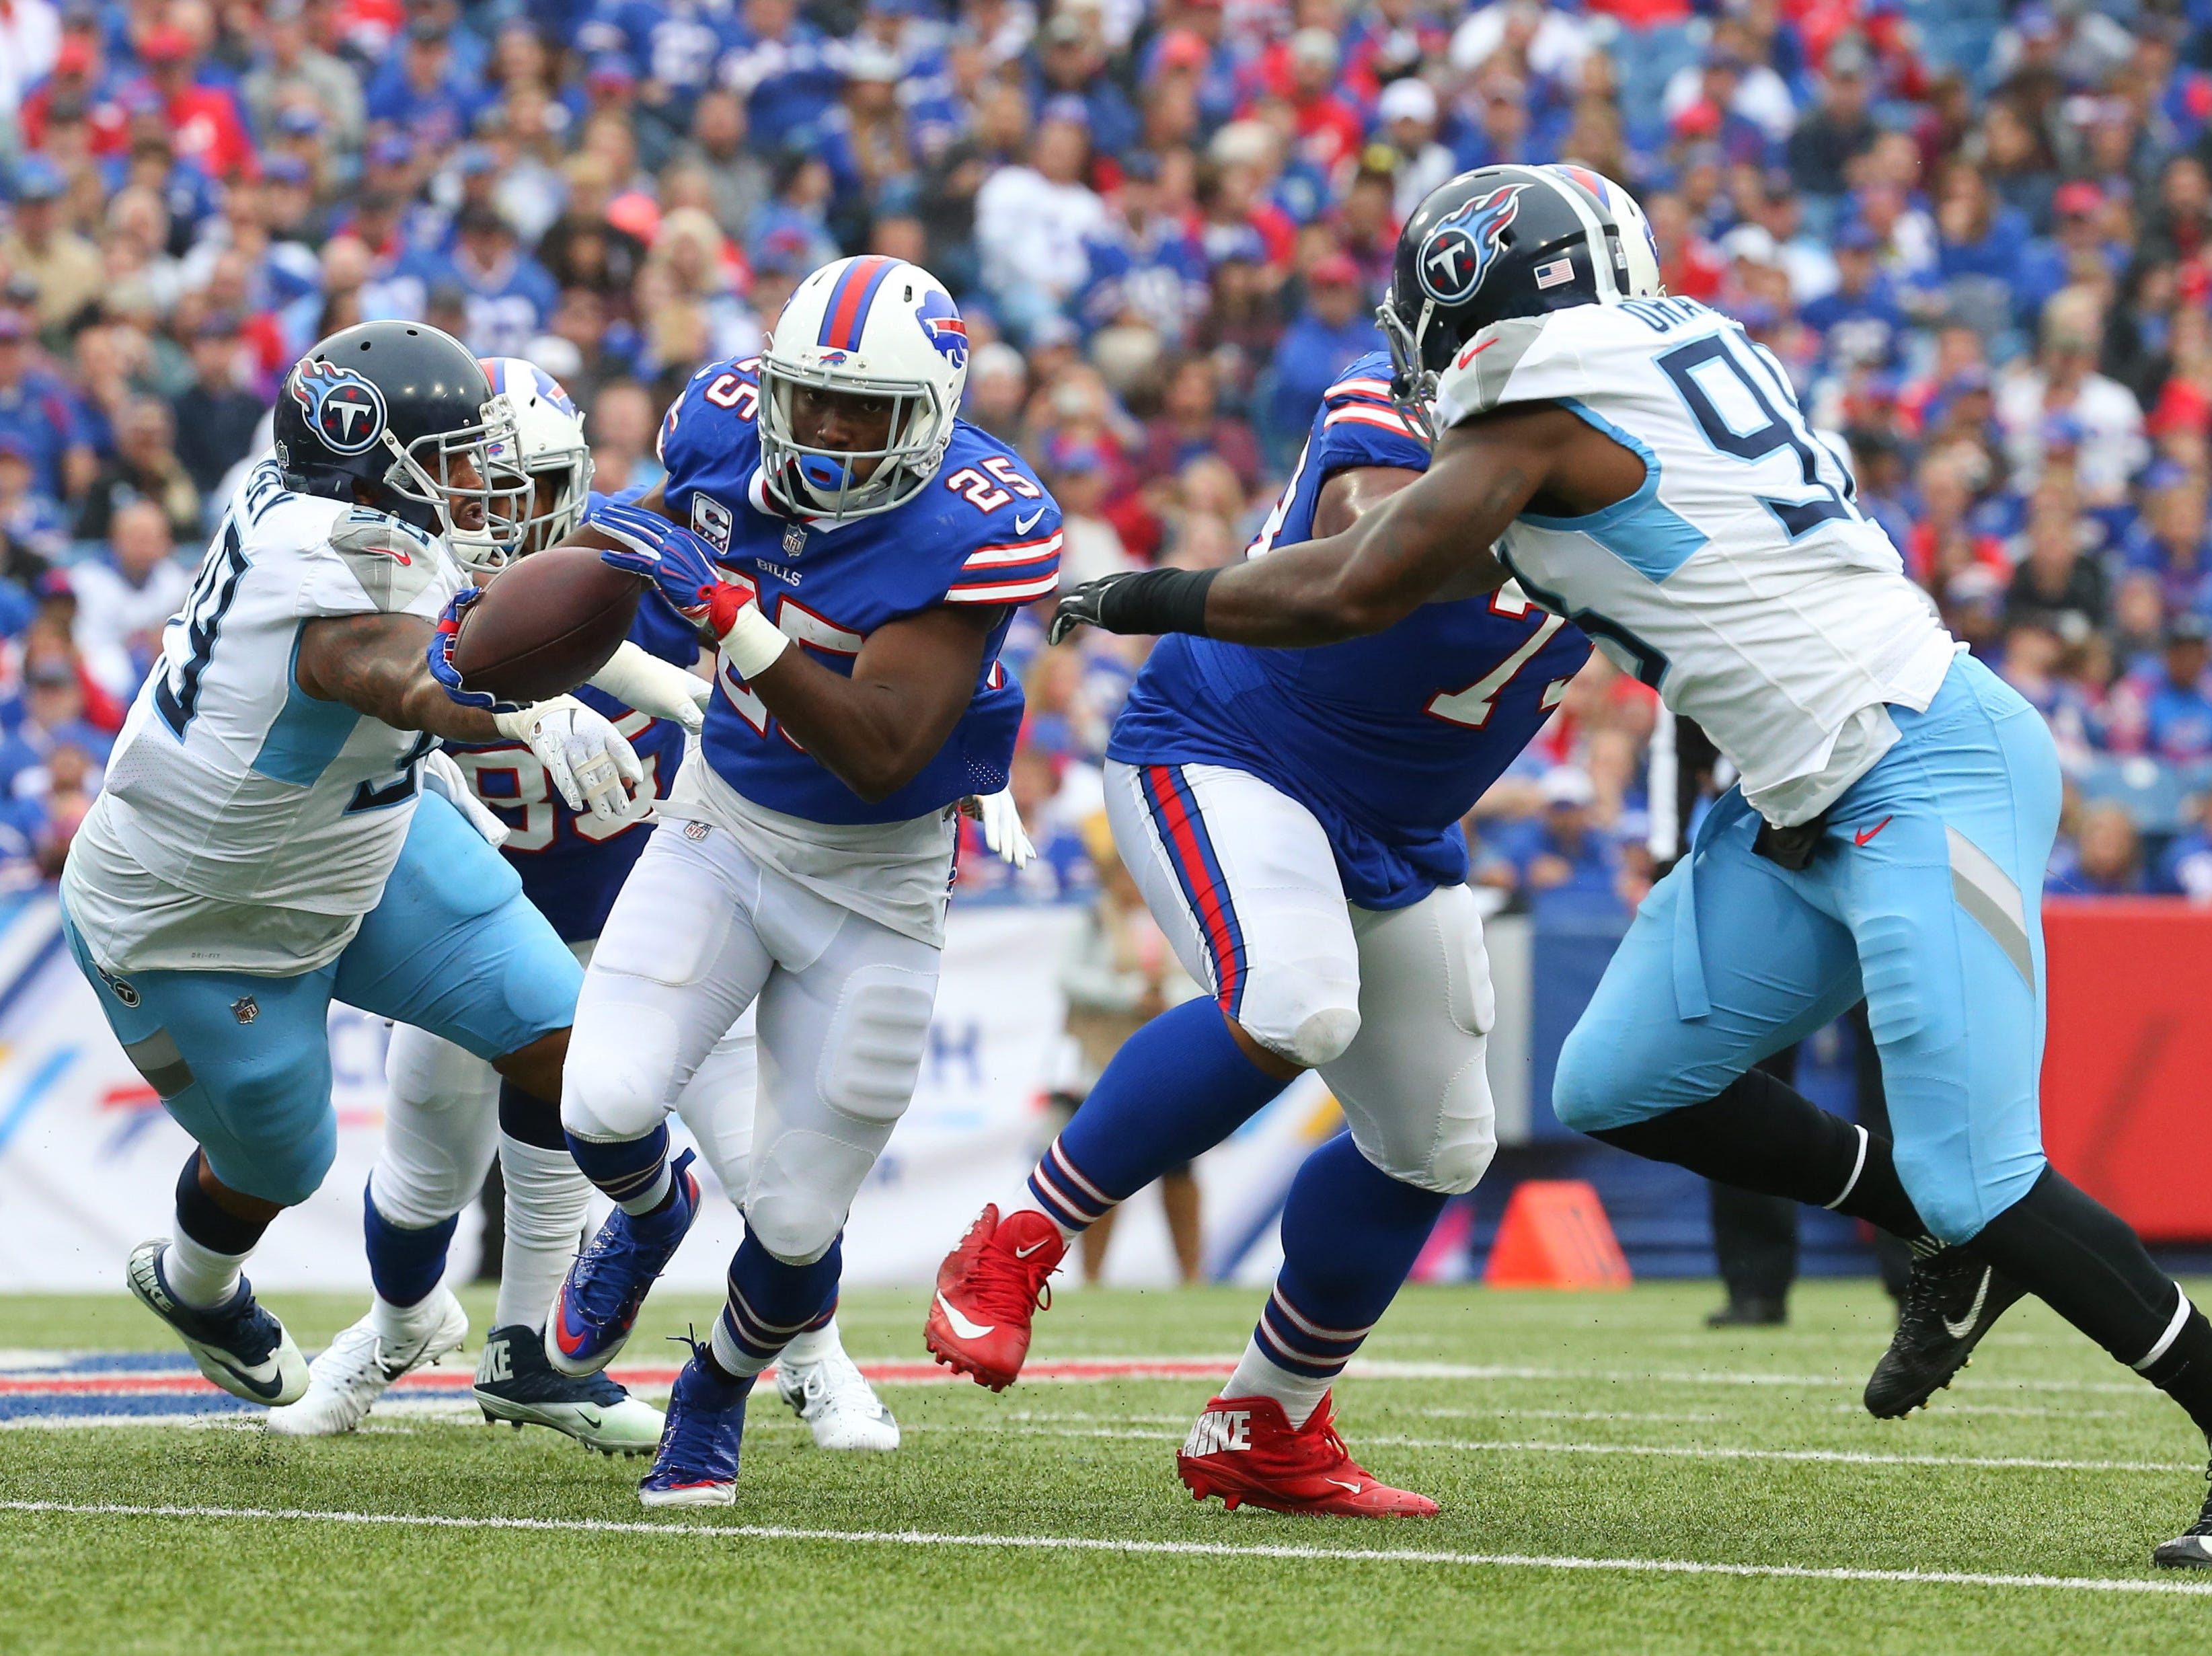 Oct 7, 2018; Orchard Park, NY, USA; Buffalo Bills running back LeSean McCoy (25) runs with the ball against the Tennessee Titans during the second quarter at New Era Field.